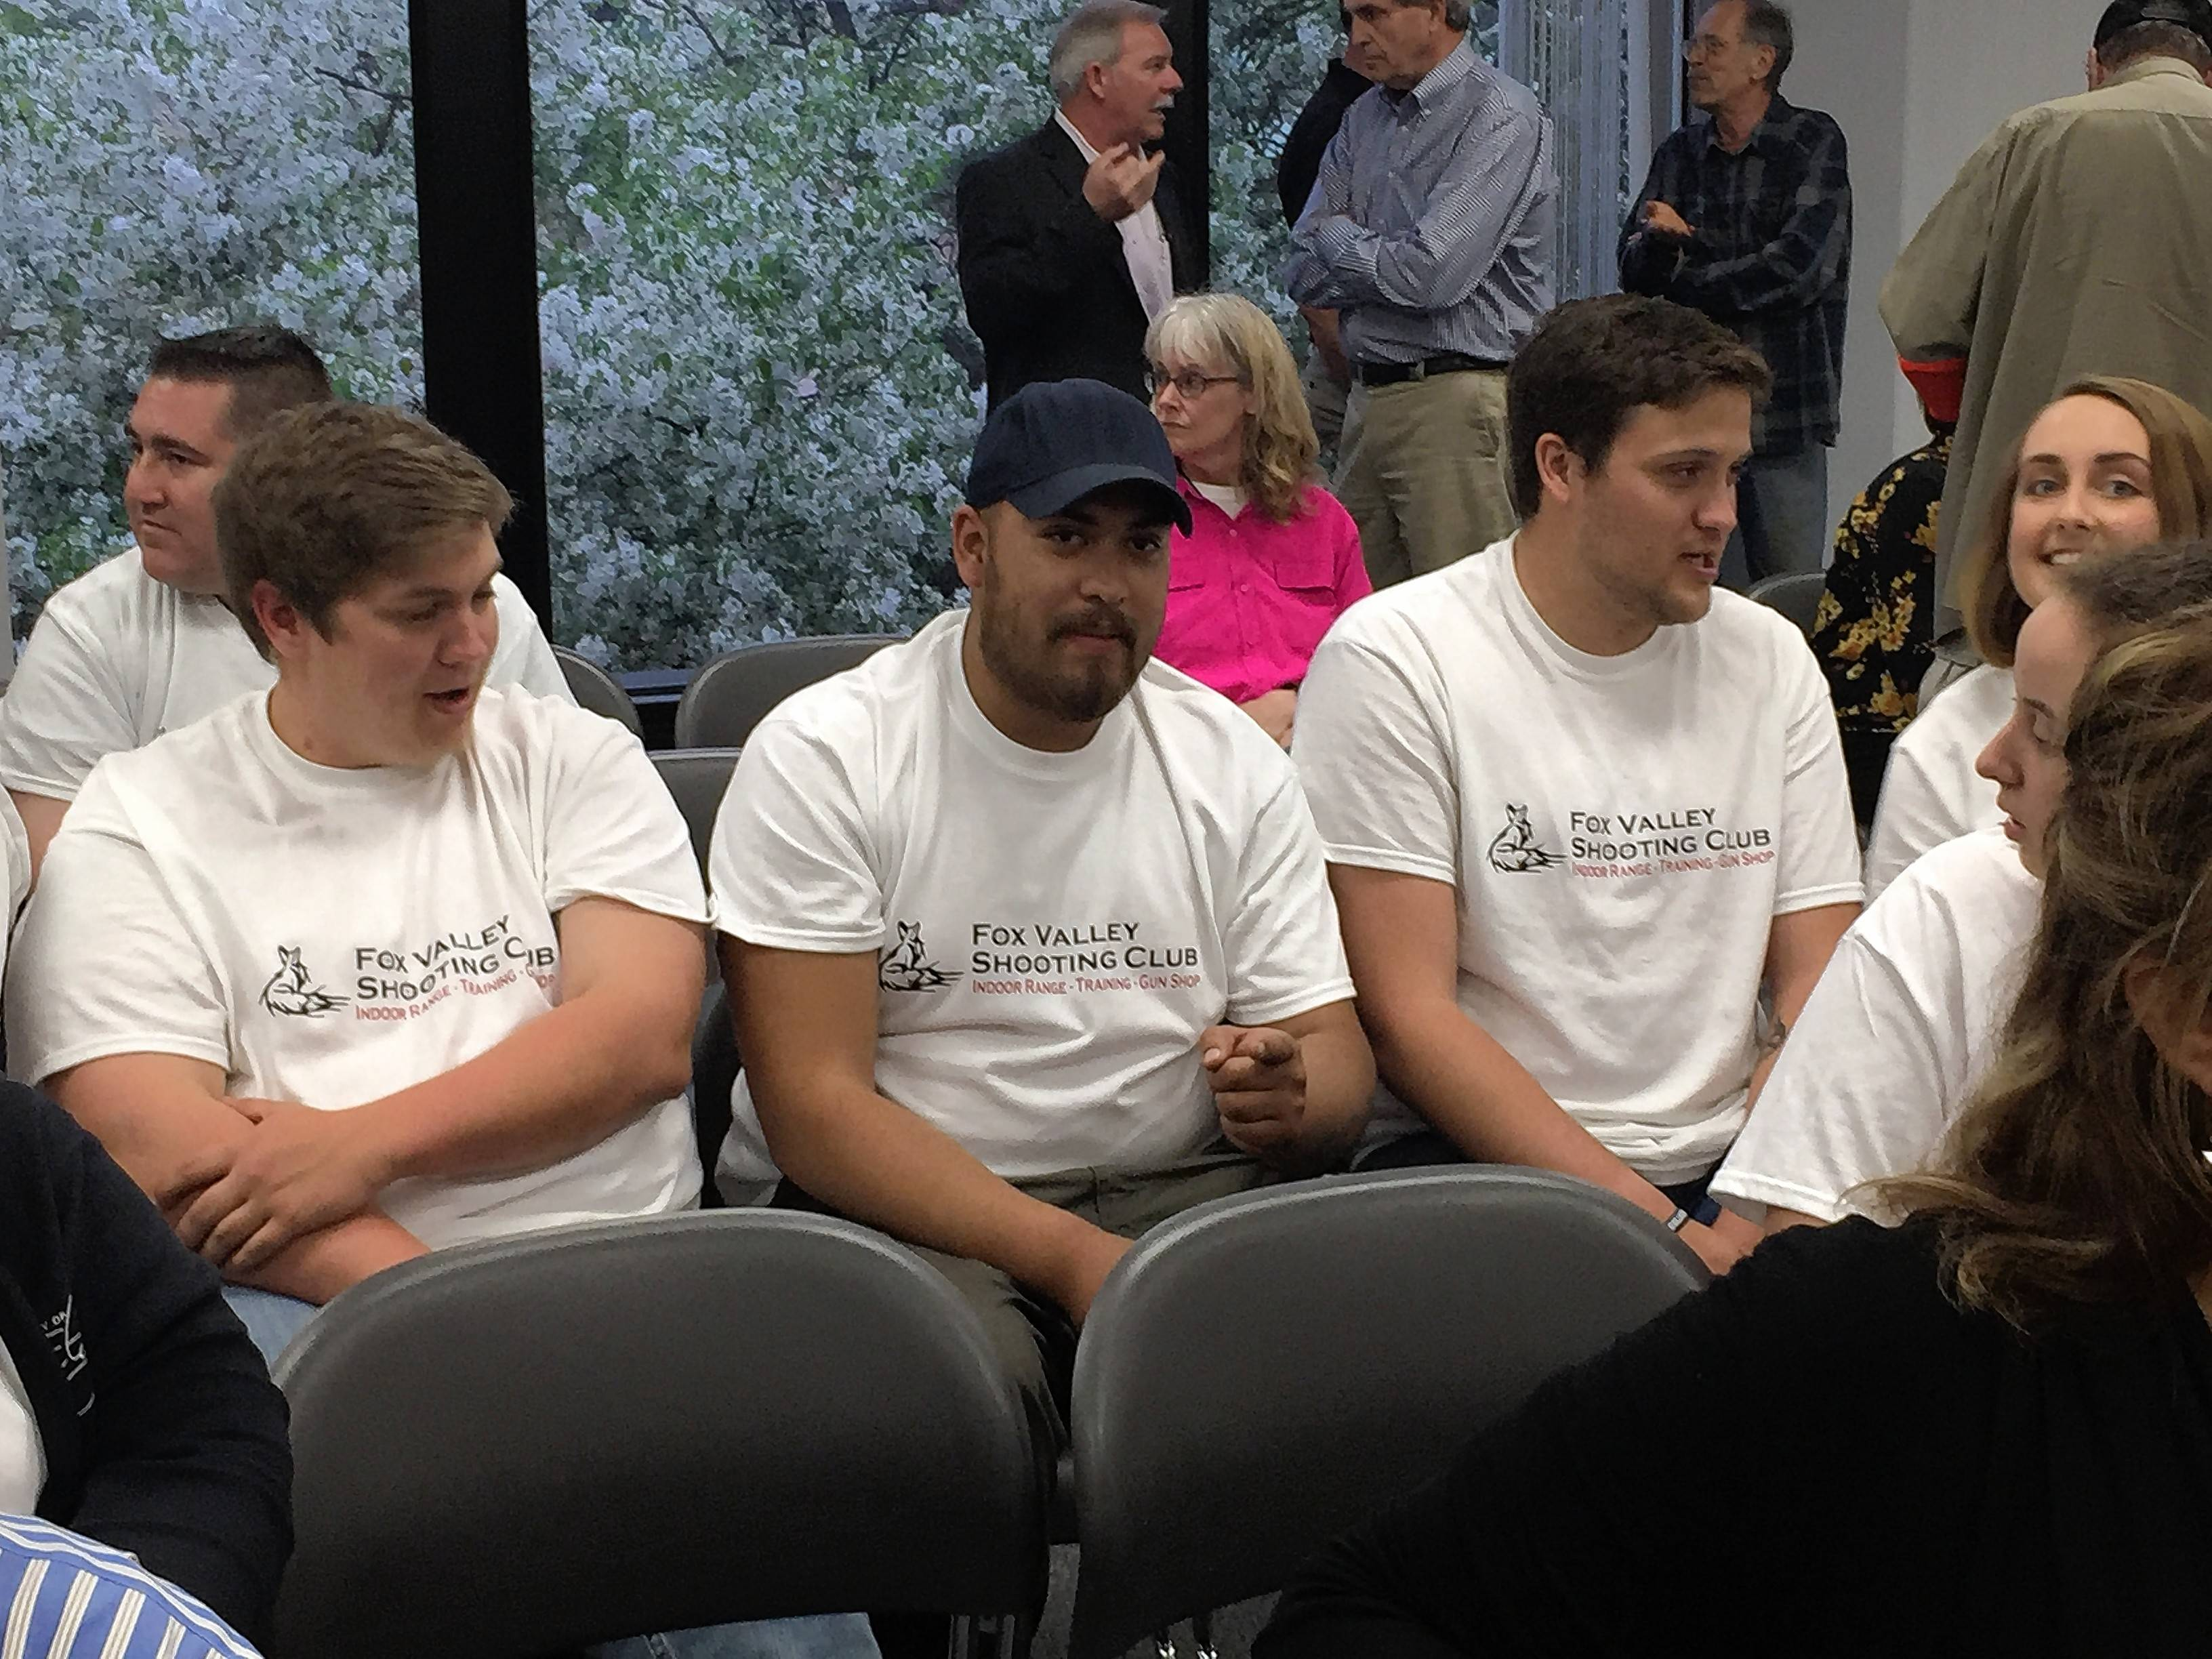 A group of supporters of plans to open Fox Valley Shooting Club in Elgin showed up at the city council meeting on Wednesday.